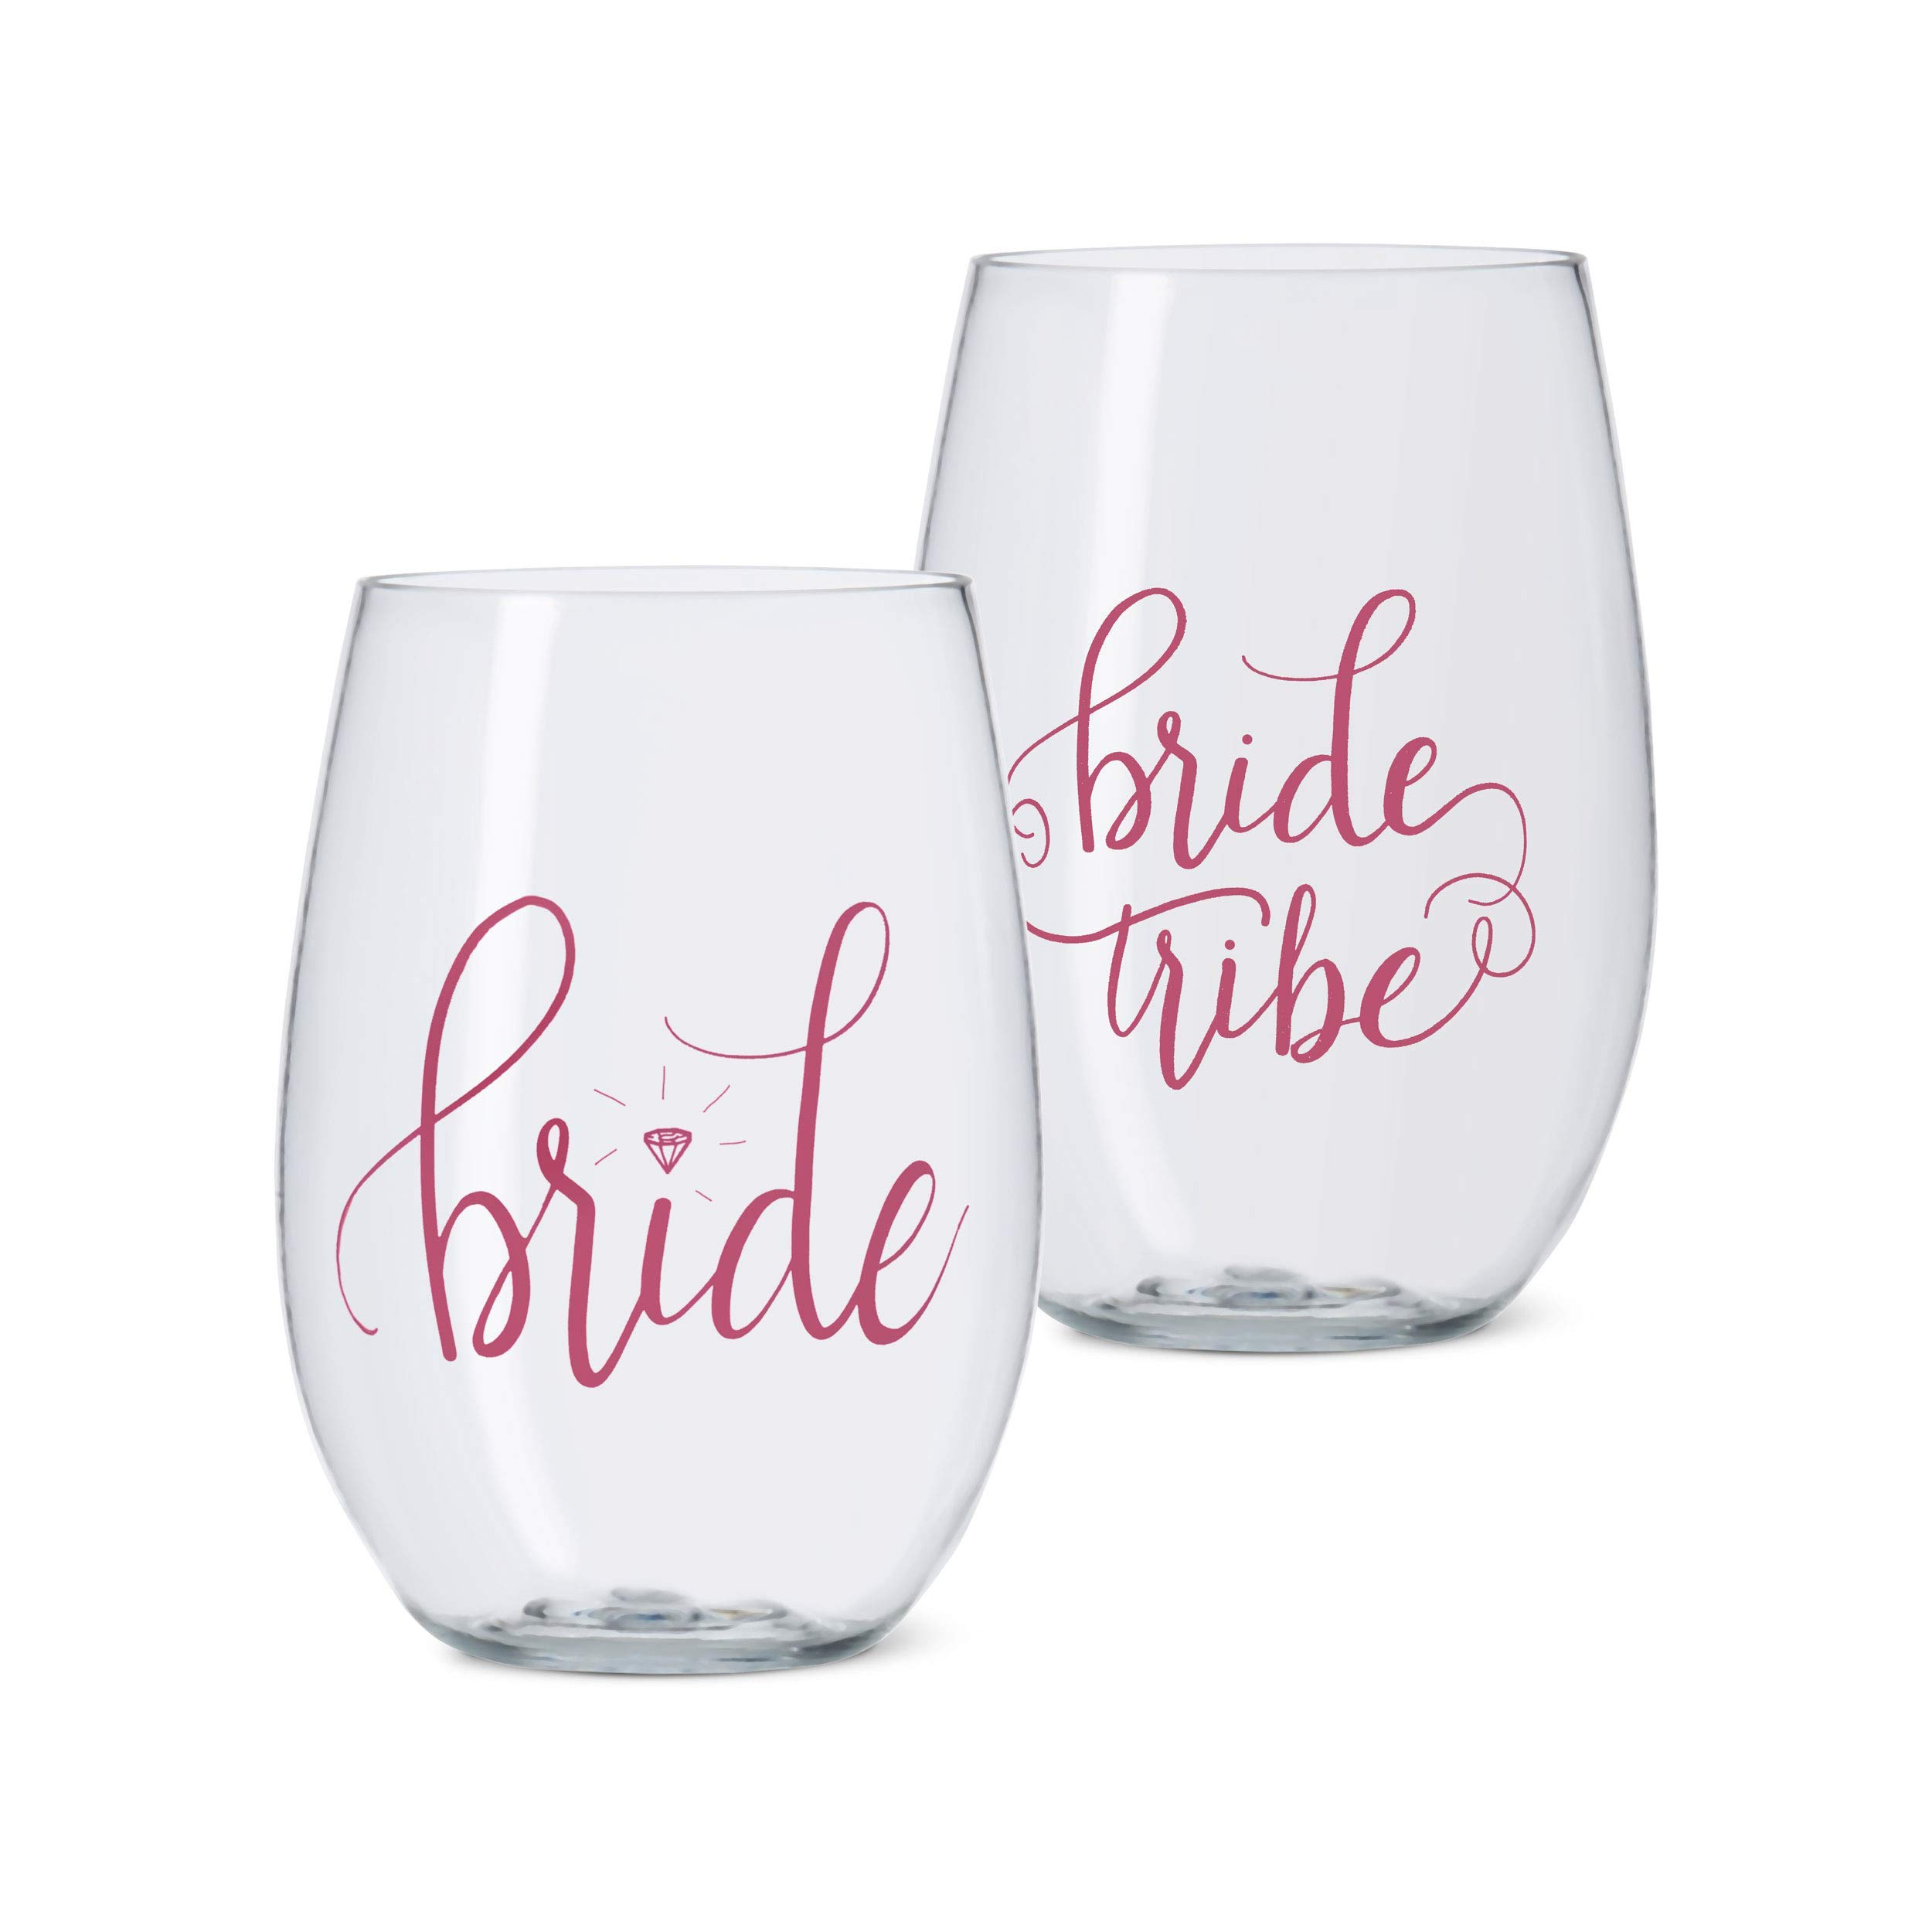 11 Piece Set of Pink Bride Tribe Durable Plastic Stemless Wine Glasses for Bachelorette Parties, Weddings and Bridal Showers